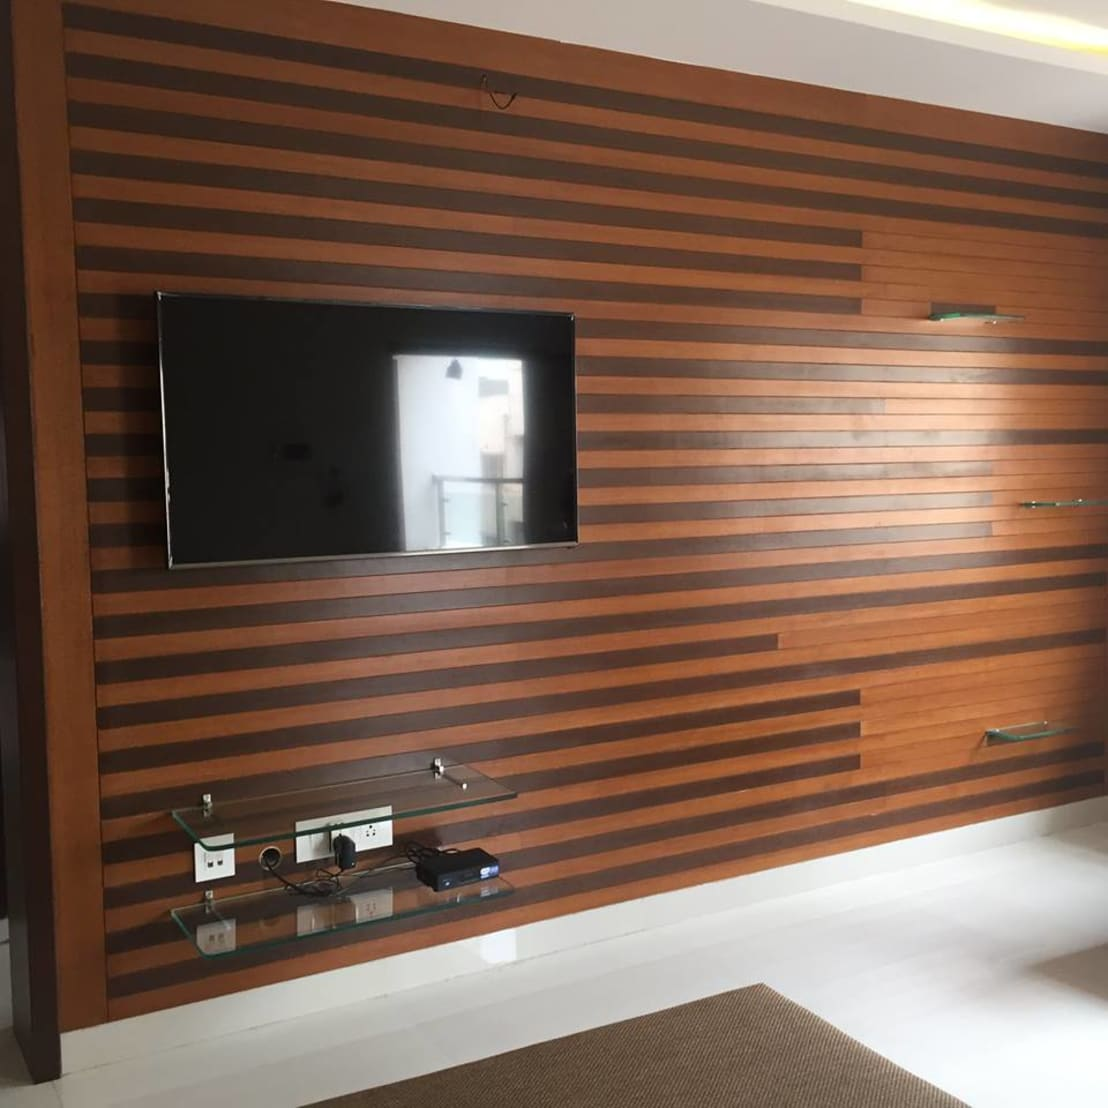 Bedroom Designs From Professionals In Hyderabad  C2NyYXBlLTEtRHBWSGVH: A 3bhk Hyderabad Residence Designed And Decorated For